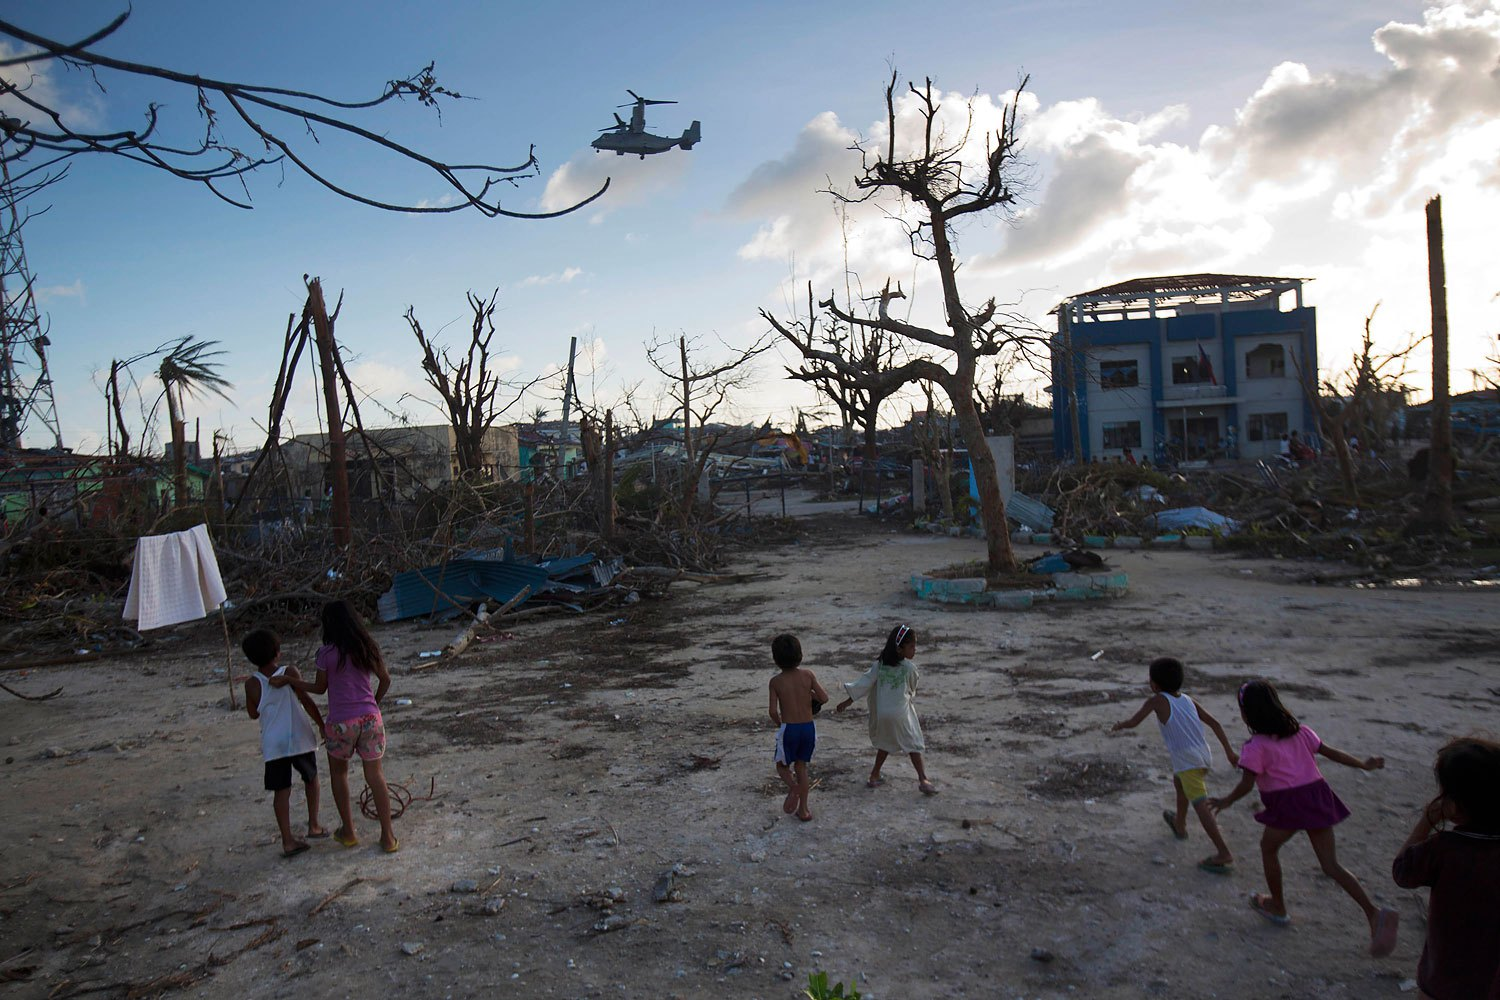 Children run towards a U.S. military aircraft as it arrives to distribute aid to Typhoon Haiyan survivors in the destroyed town of Guiuan, Philippines on November 14, 2013.